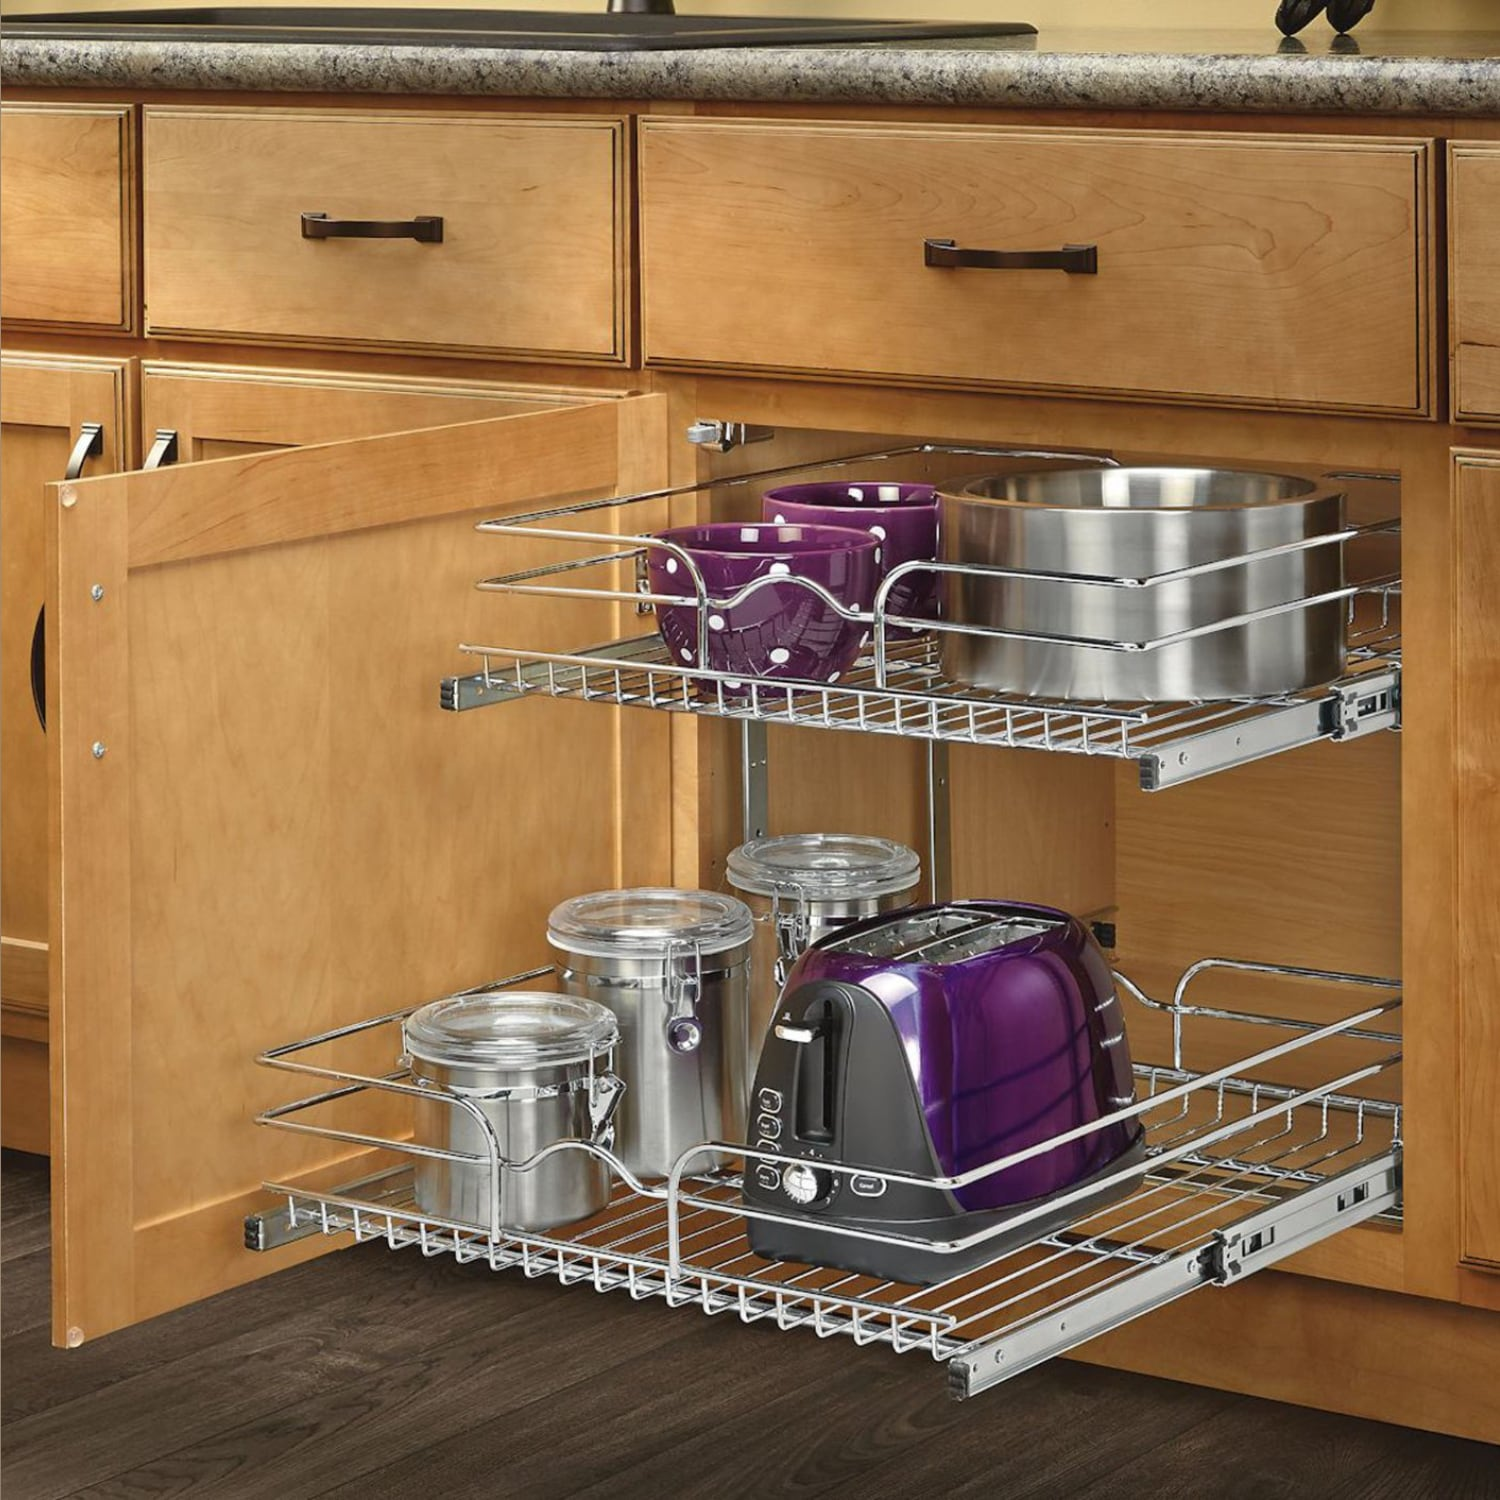 Shop Rev A Shelf 15 Inch Pullout 2 Tier Wire Basket Cookware Cabinet Organizer Chrome Overstock 13467469